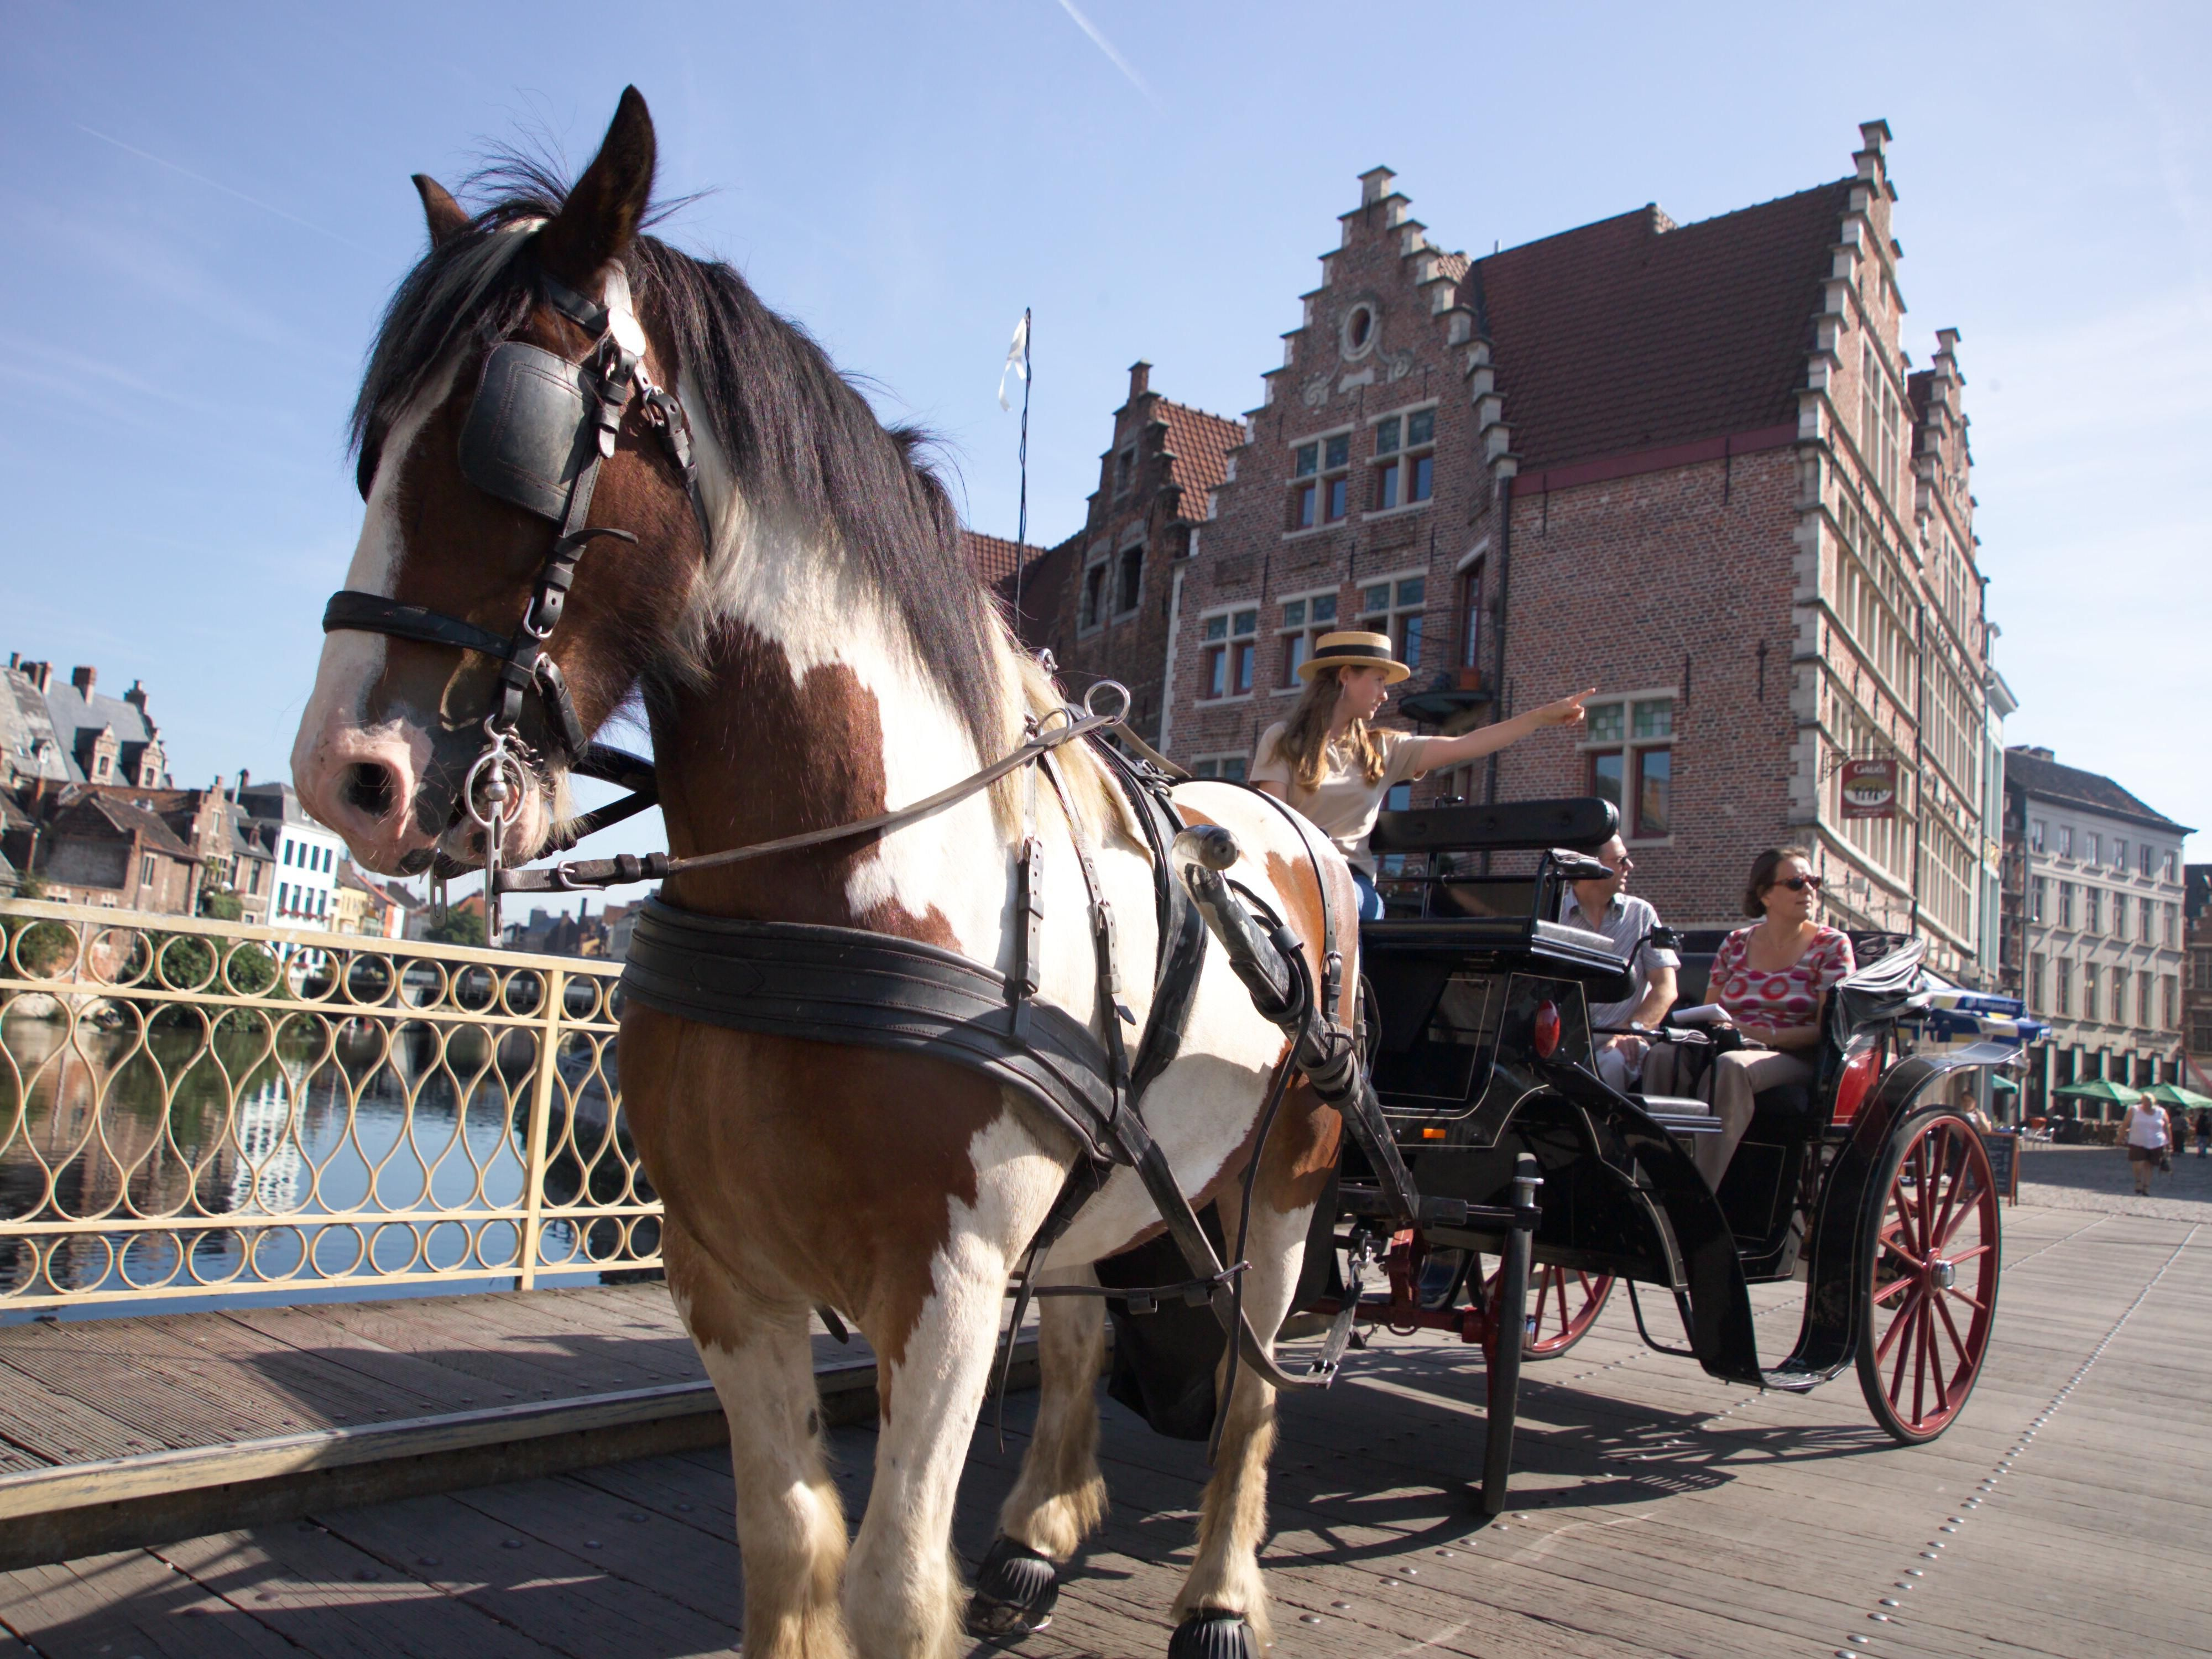 Enjoy a carriage tour in Gent